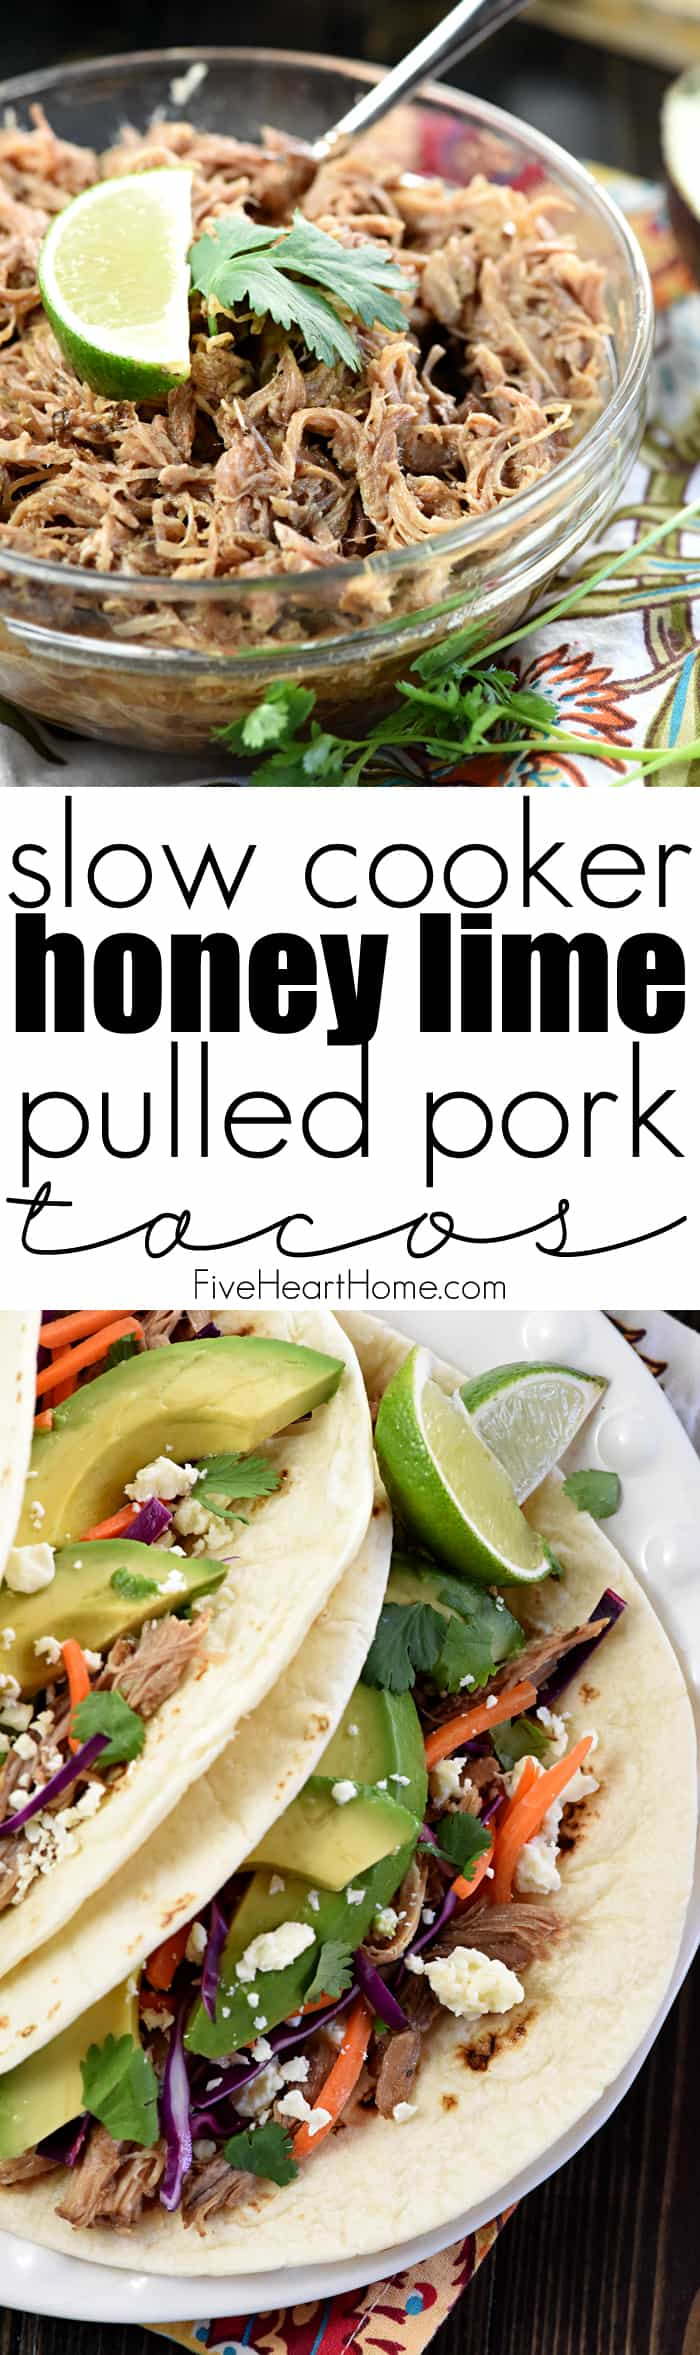 Slow Cooker Honey Lime Pulled Pork Tacos Collage with Text Overlay